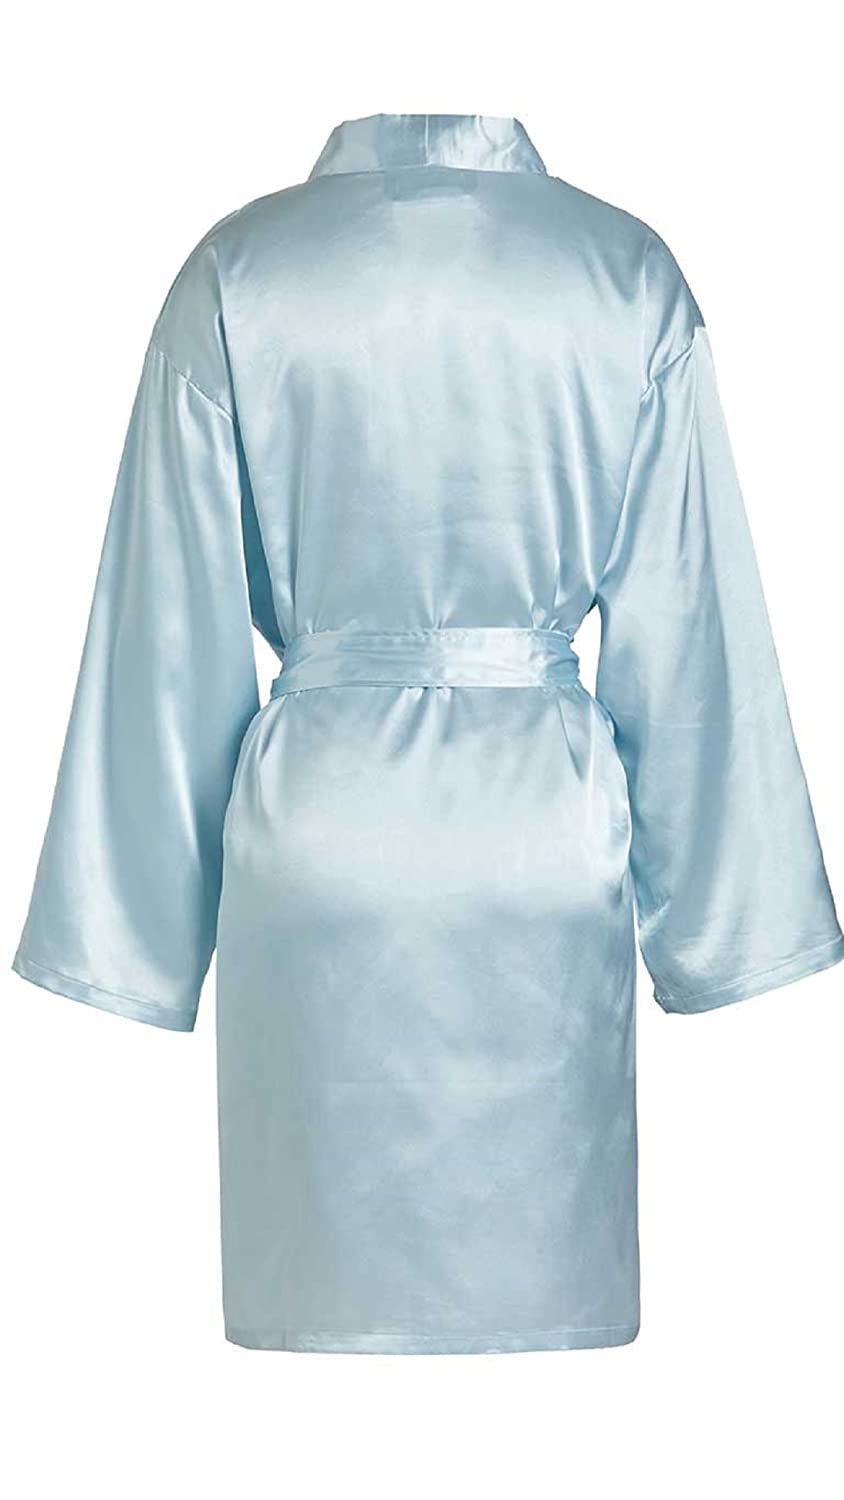 TowelBathrobe Womens Kimono Satin Robe Satin Lounge Bridesmaids Short Robe